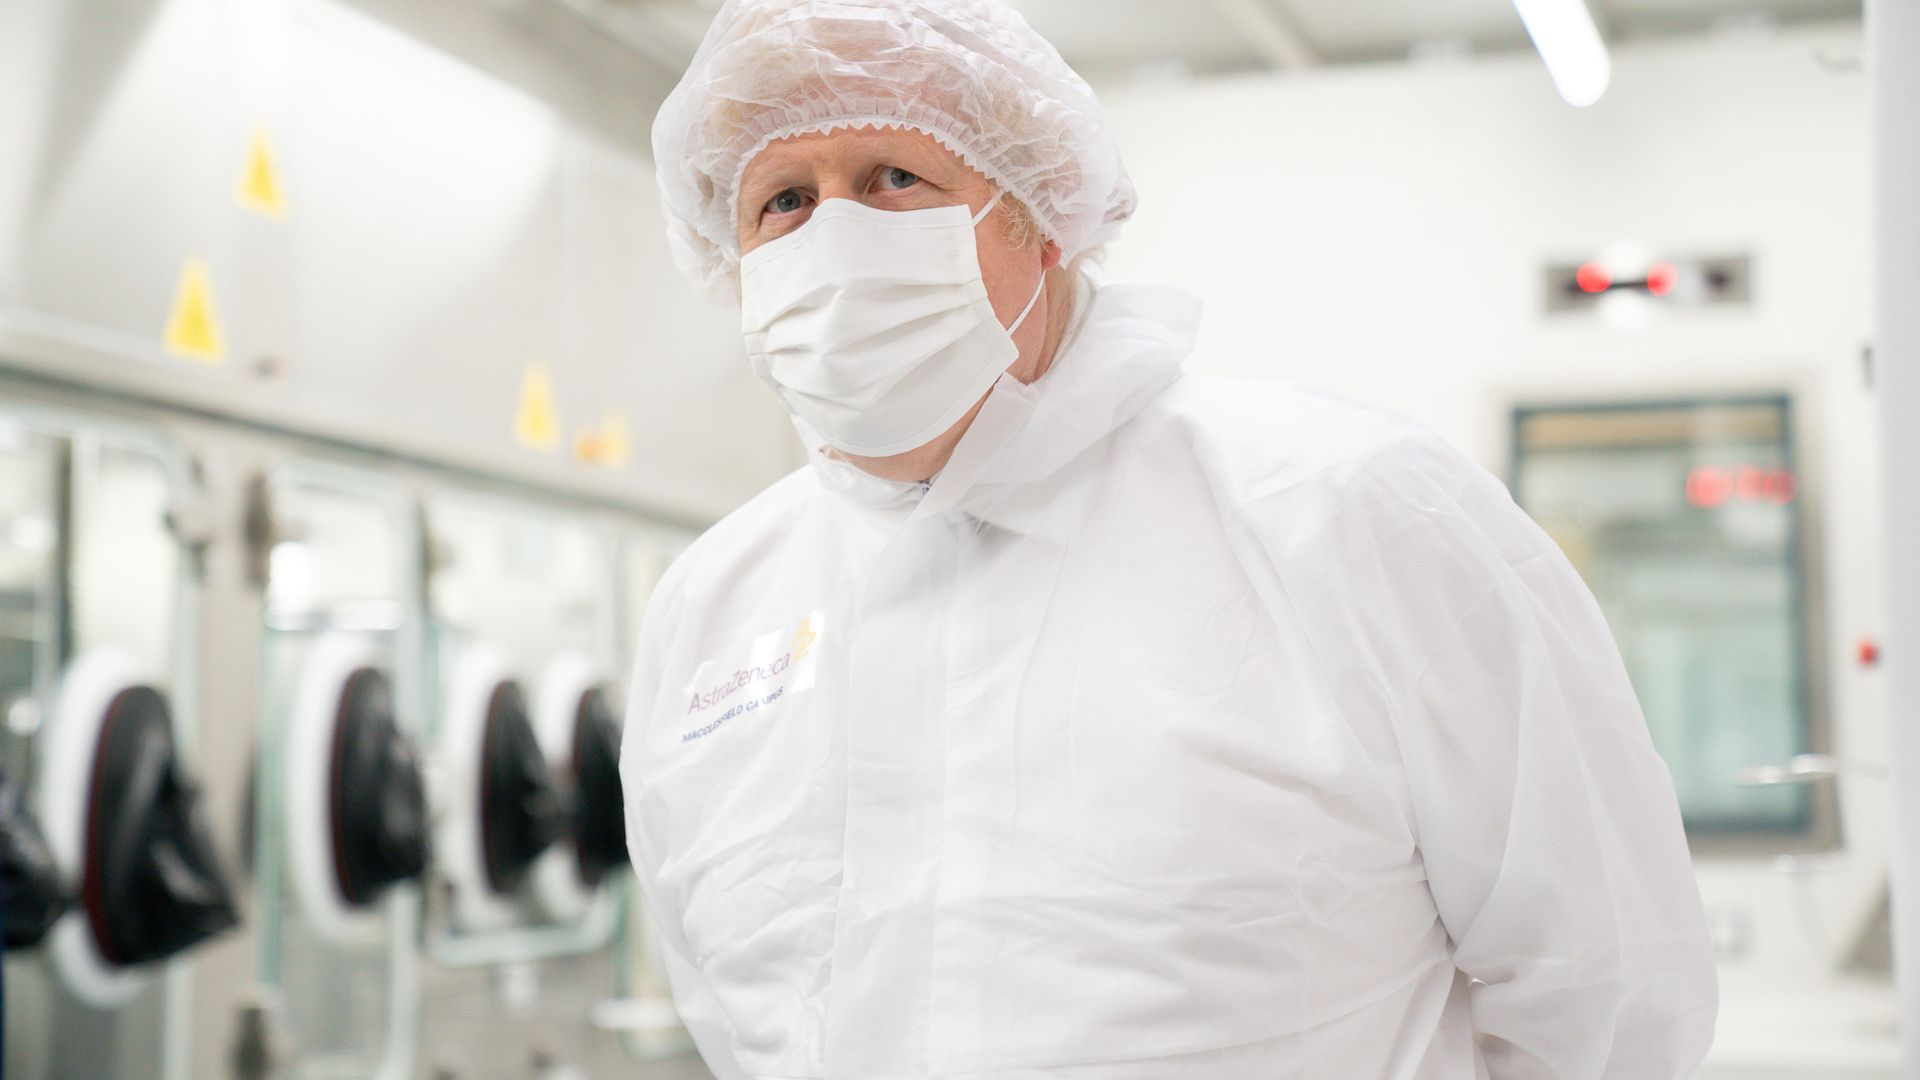 Prime Minister Boris Johnson during a visit to the AstraZeneca site in Macclesfield, Cheshire - Credit: PA